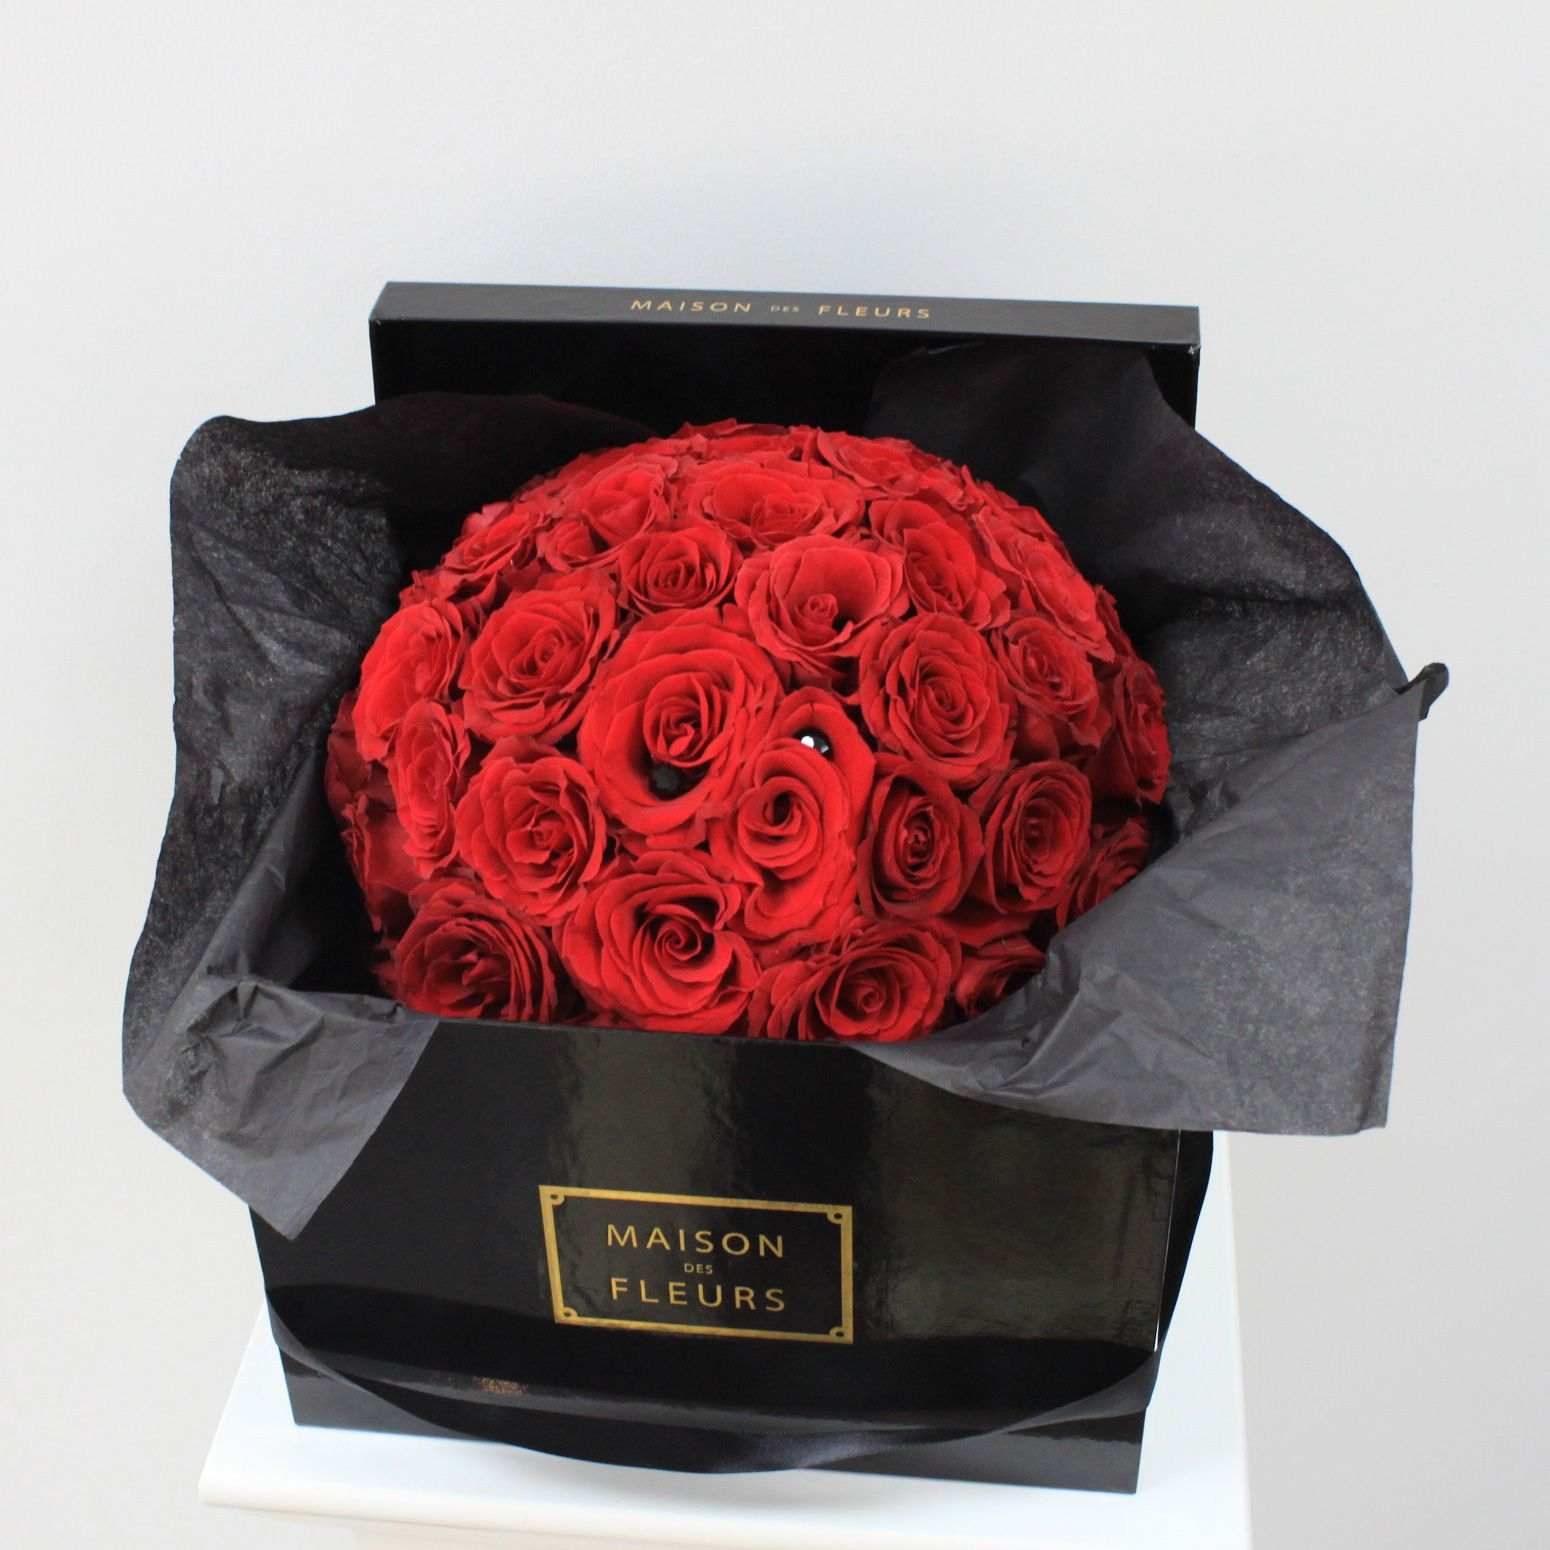 Buy flowers for delivery rose ball ♥ maison des fleurs ♥